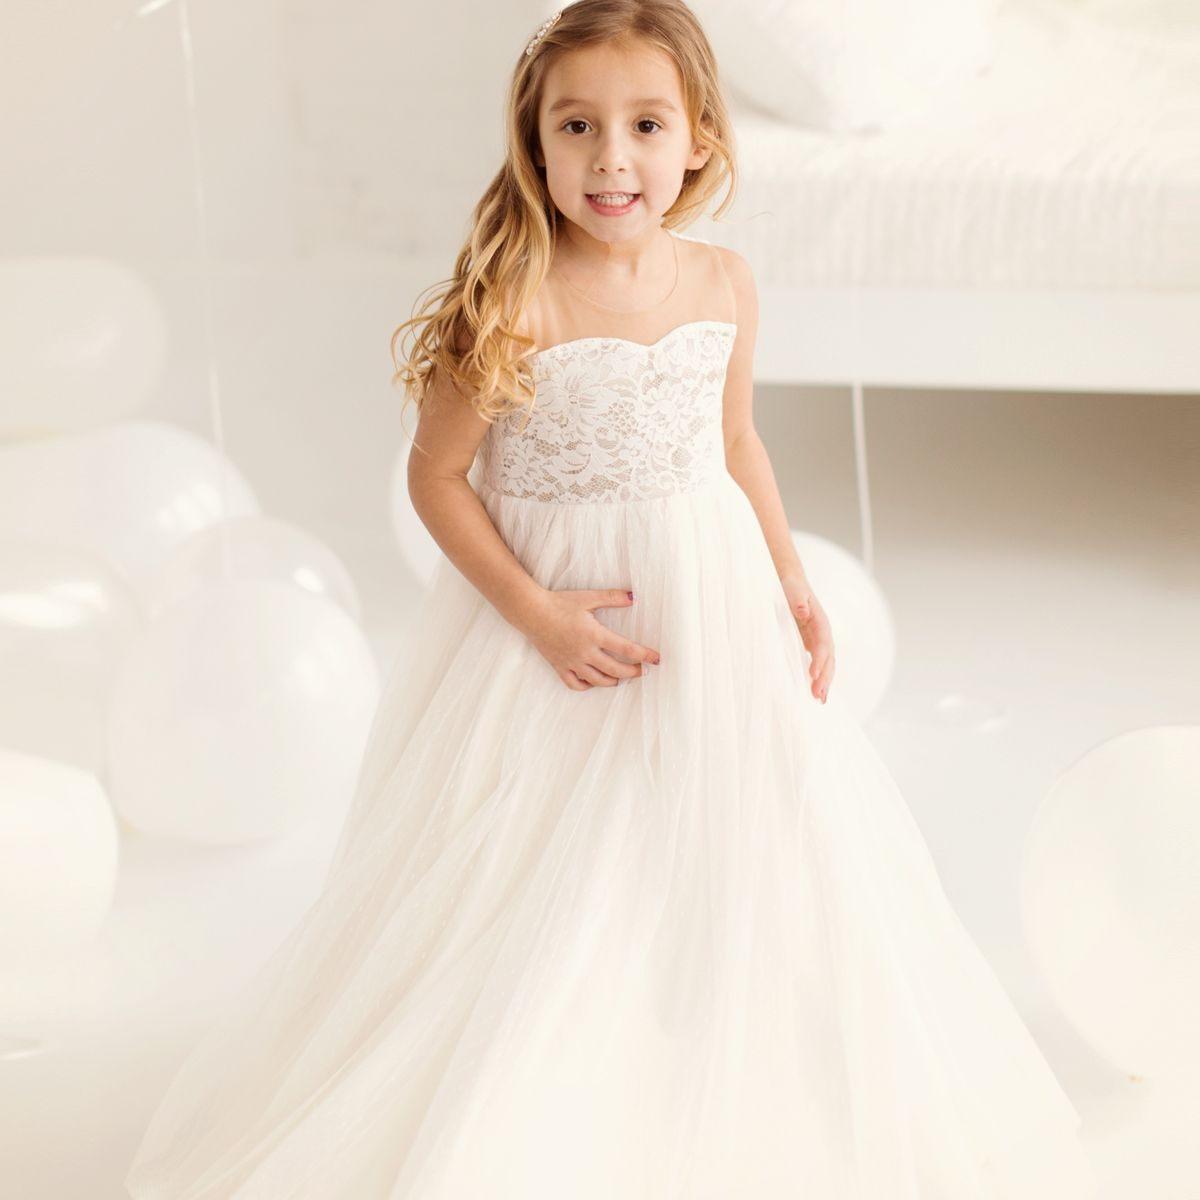 427ed43383 Breathtaking Penelope dress is drop dead gorgeous for flower girls. This  stunning piece features ivory lace bodice with illusion neckline and airy  swiss dot ...